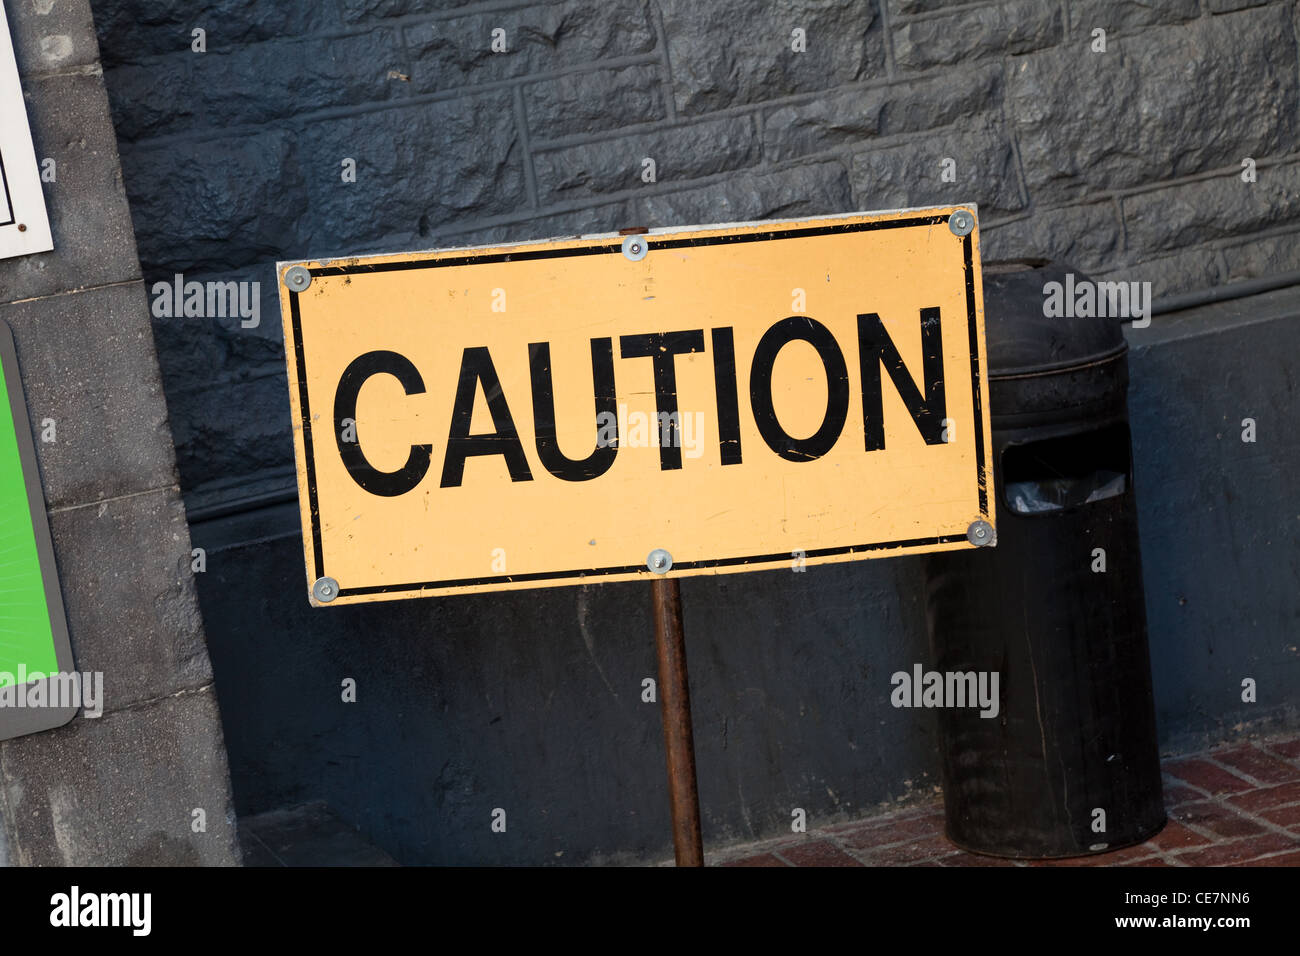 Yellow Caution sign close up - Stock Image